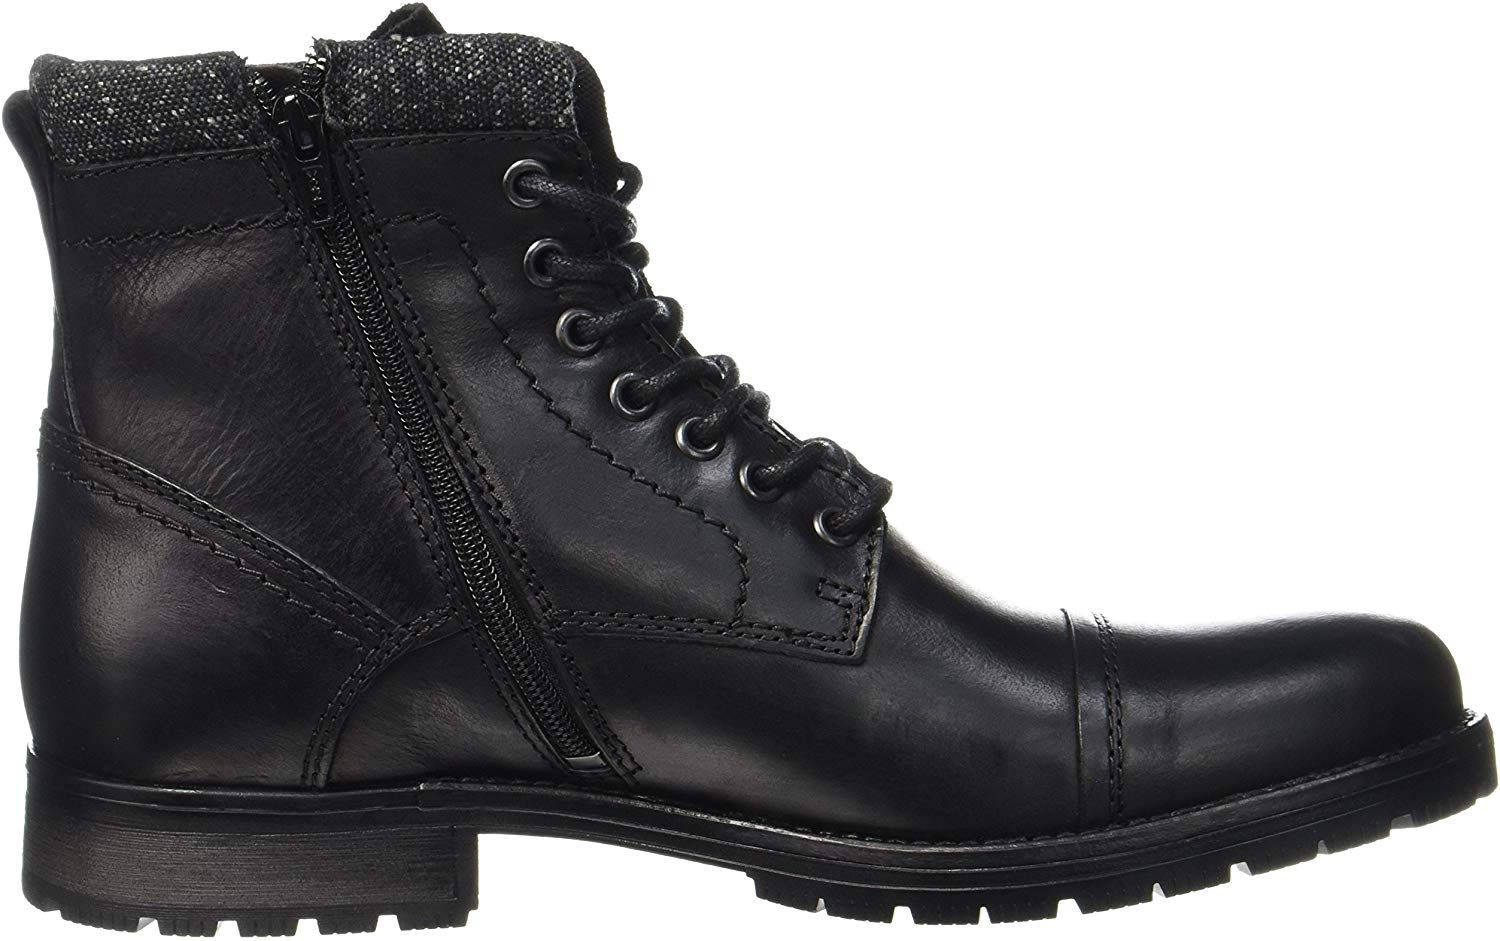 Jackamp; BootsBlack6 Jones Men's Jfwmarly Classic Leather mN8O0vnw